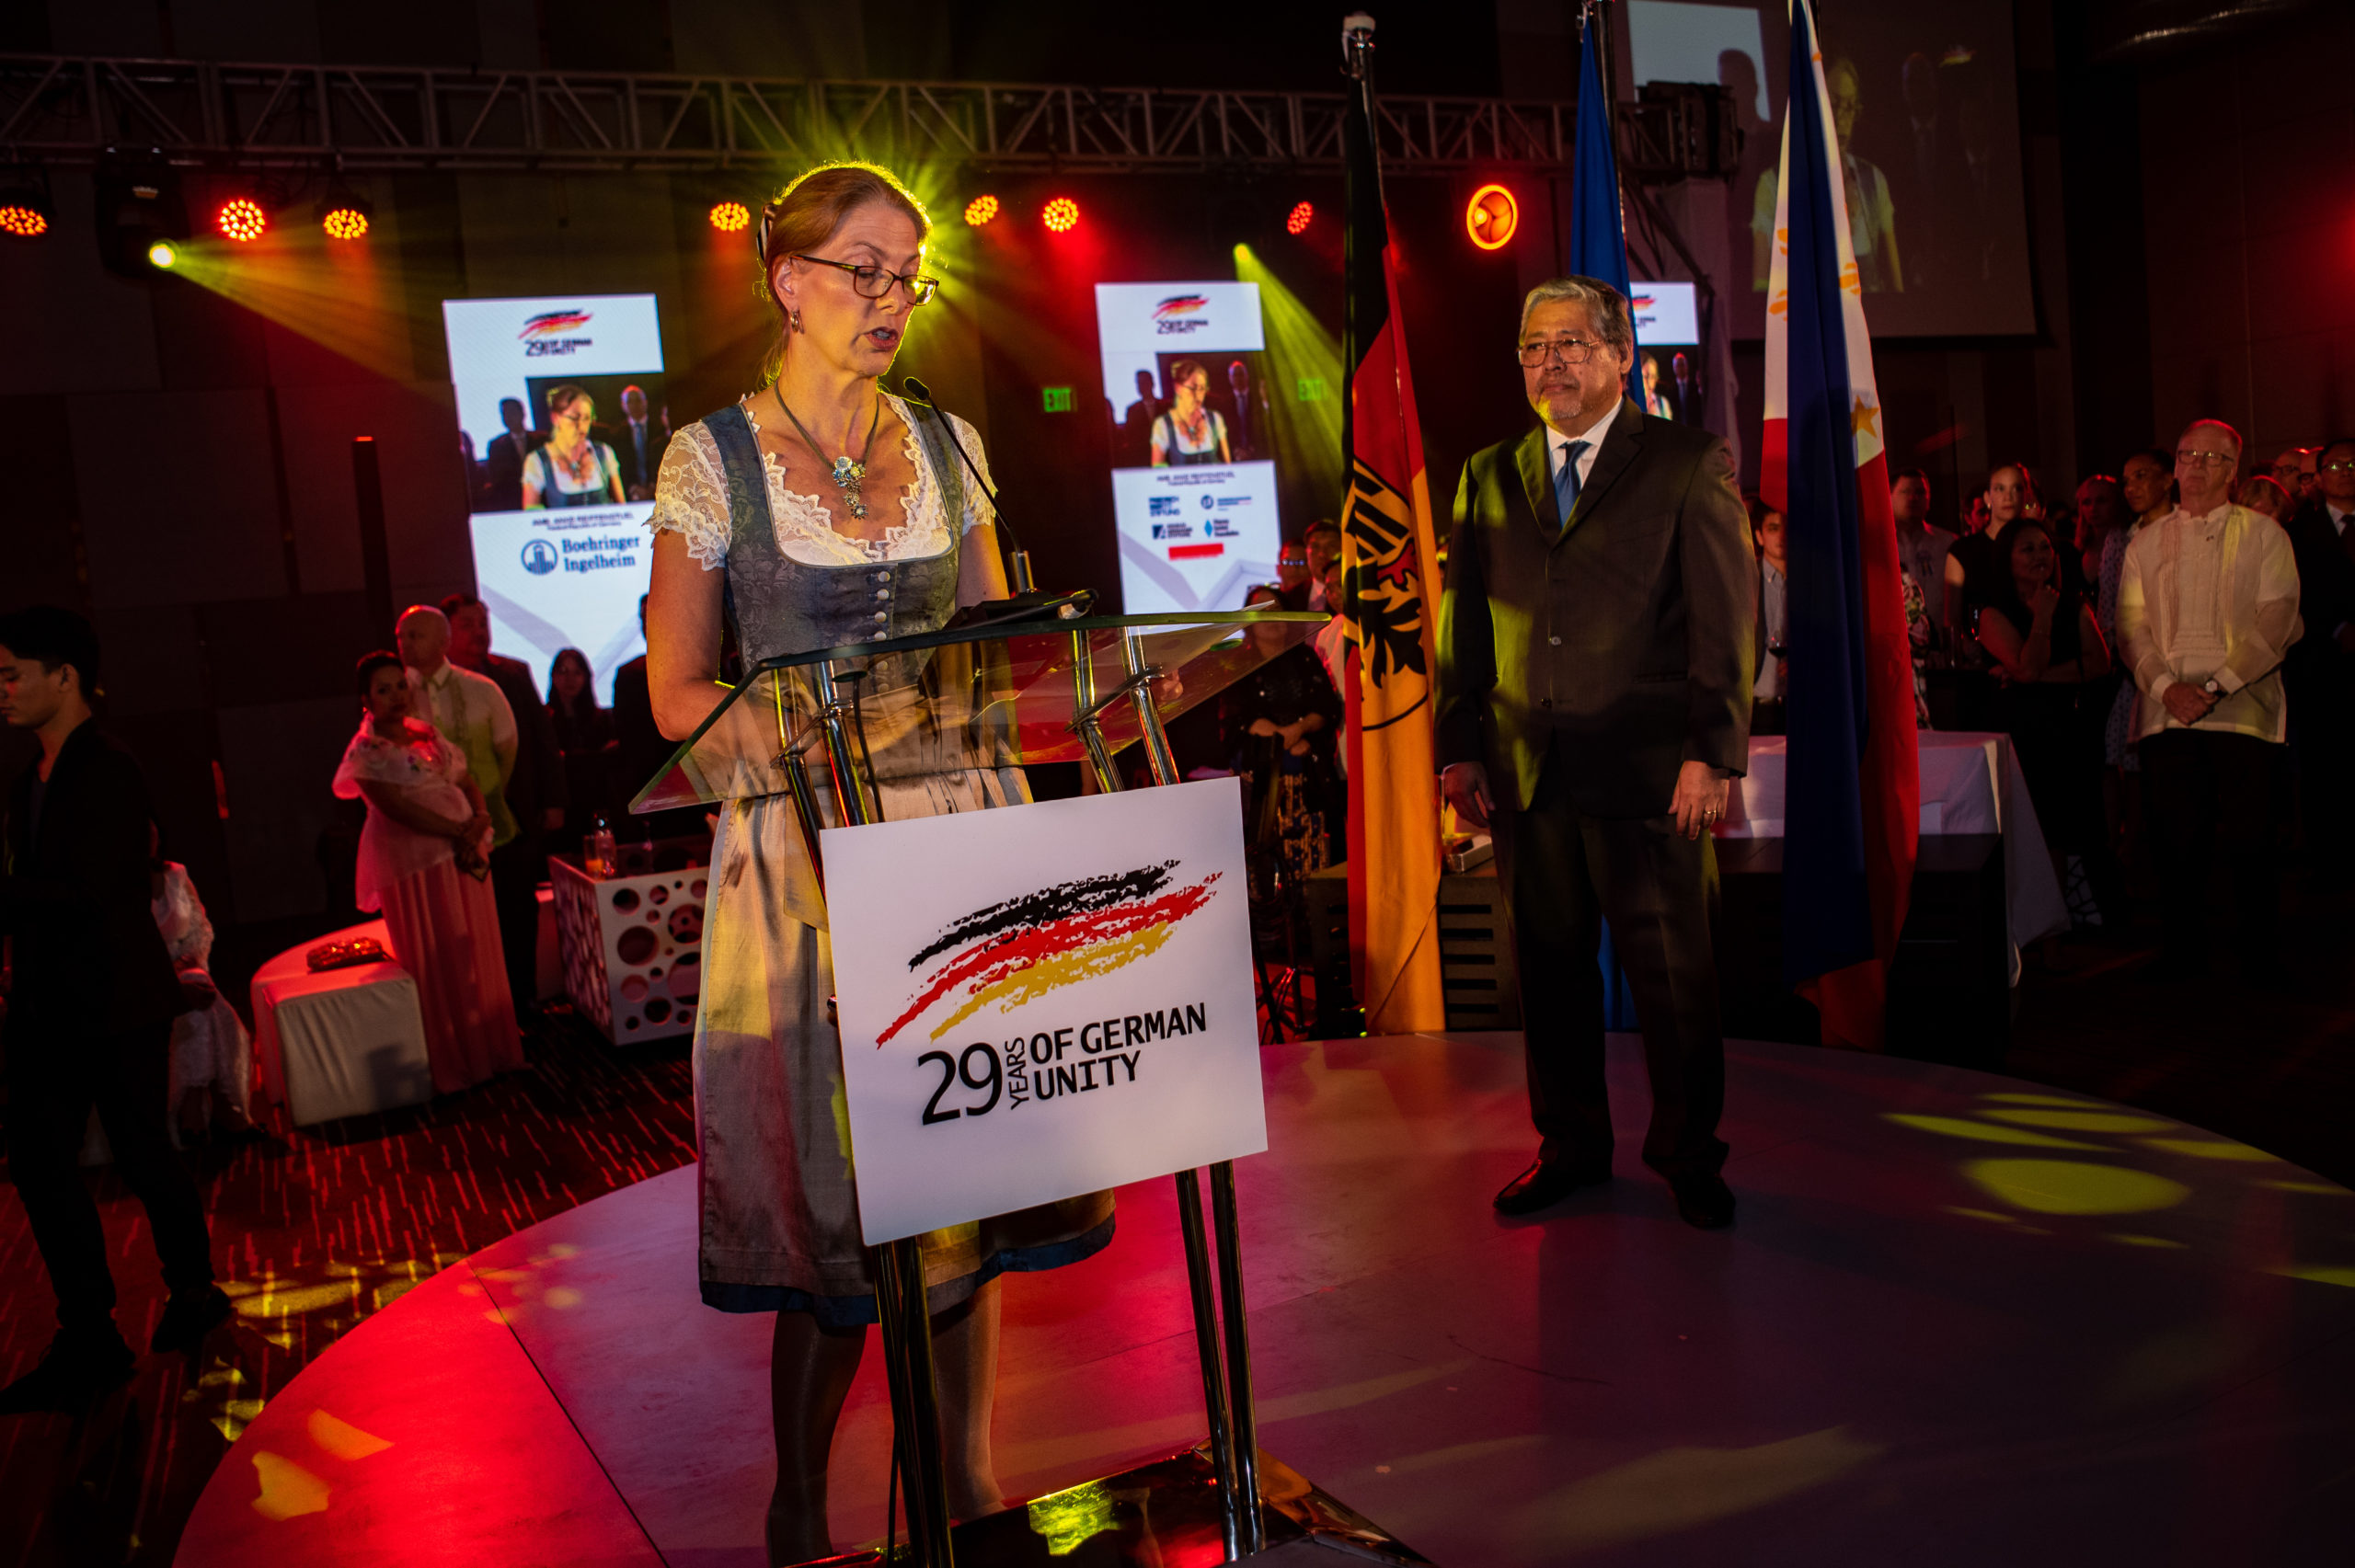 29th German Unity Celebration focuses on Building Bridges and International Cooperation